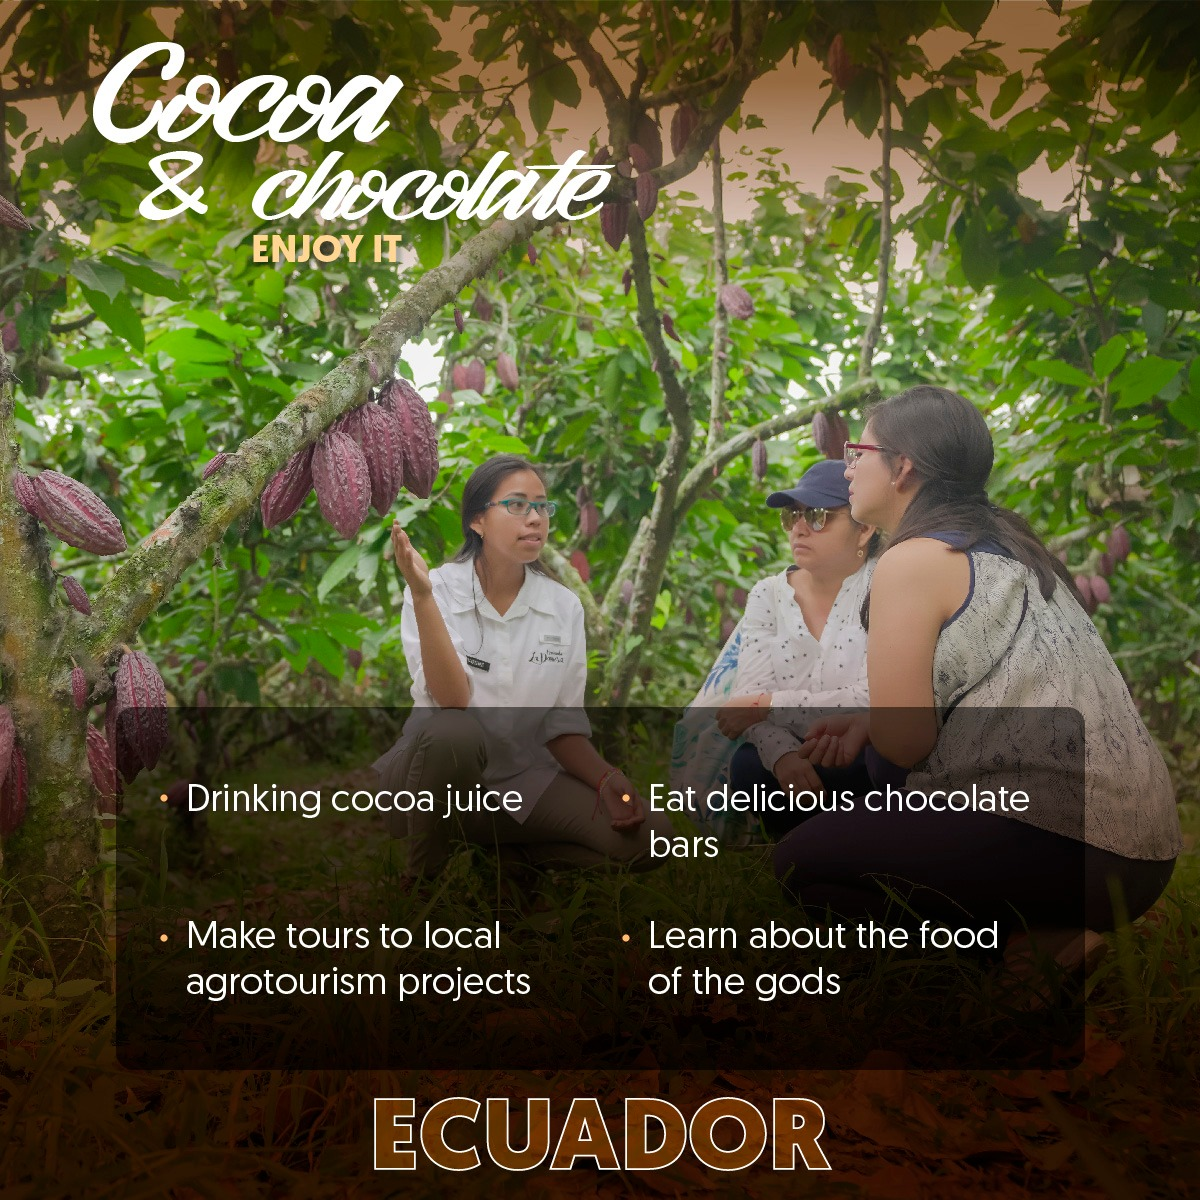 Did you know that the original cacao tree first grew on the Ecuadorian Amazon? The first vestiges dated back to 3000 b.C.  #Chocolate #Nature #Ecuador https://t.co/UGlo2GpNVB